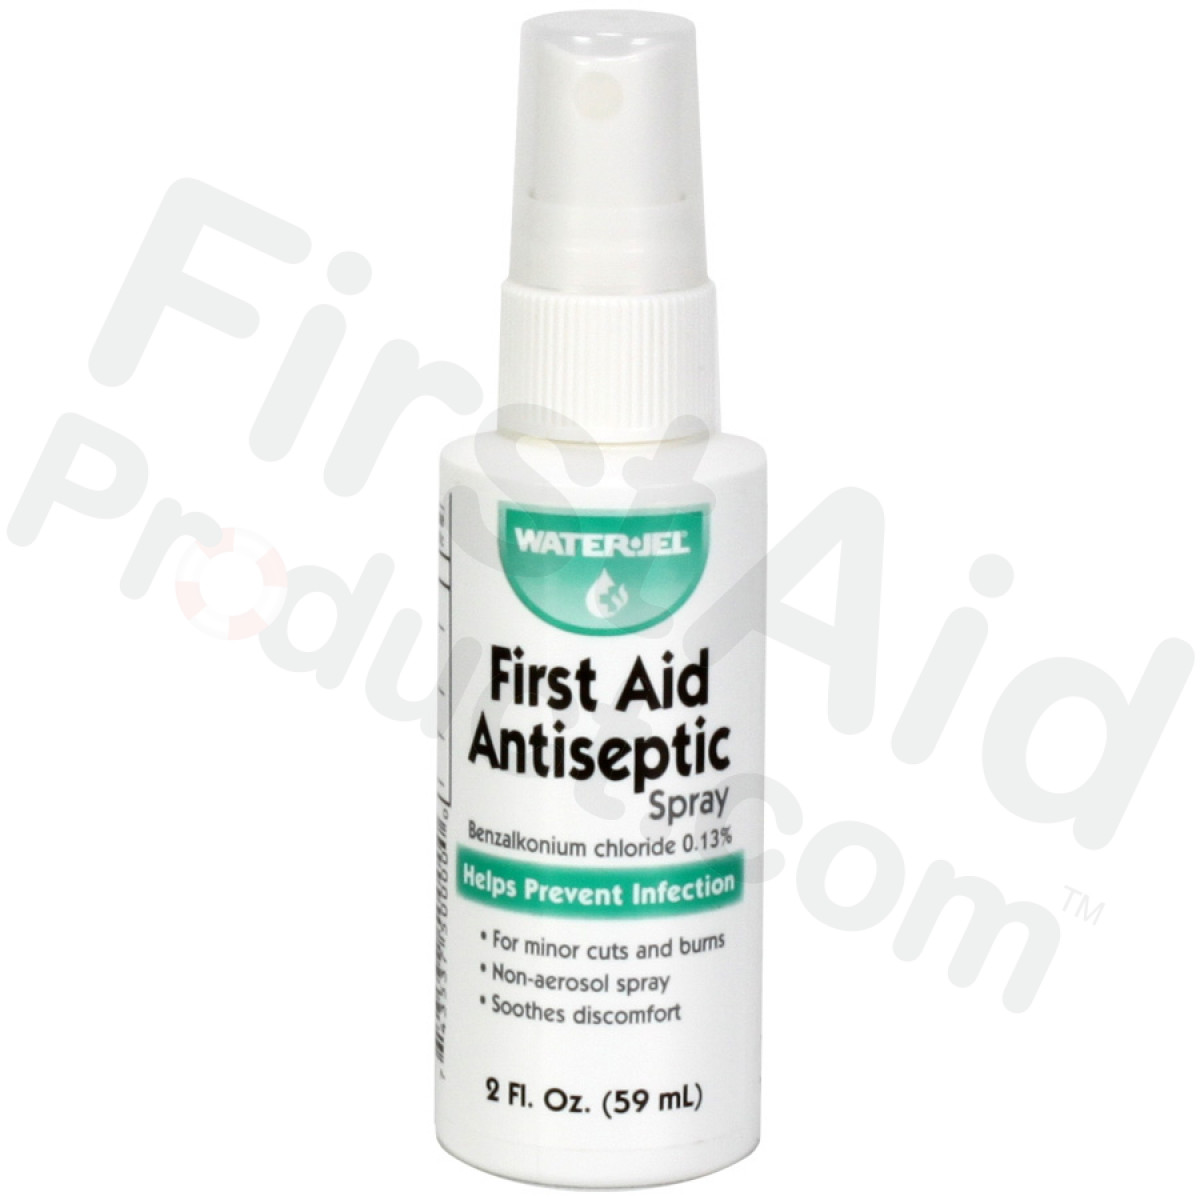 First Aid Antiseptic Spray